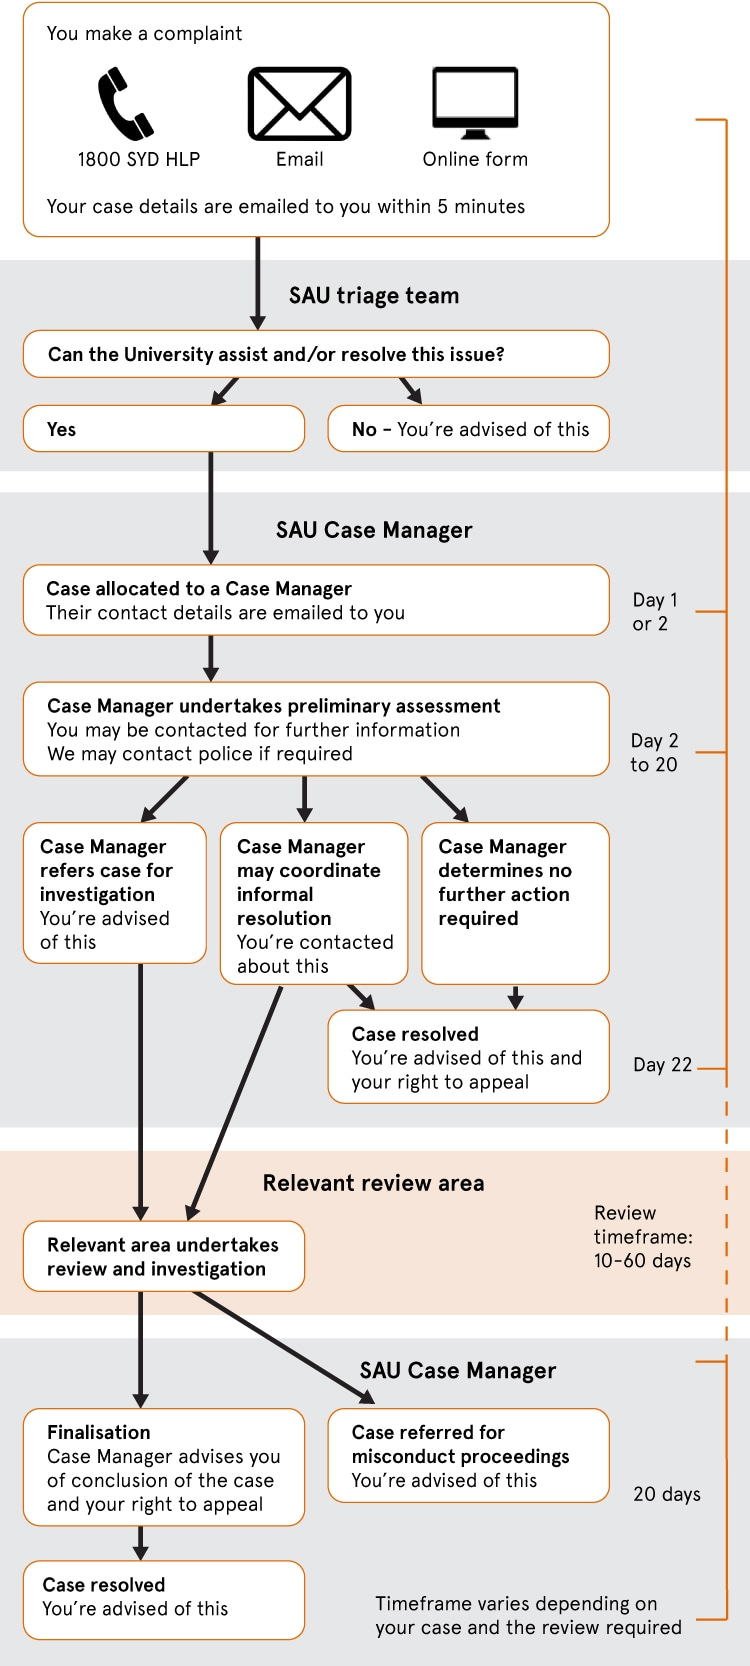 Flowchart of the complaints process as outlined in the text above.